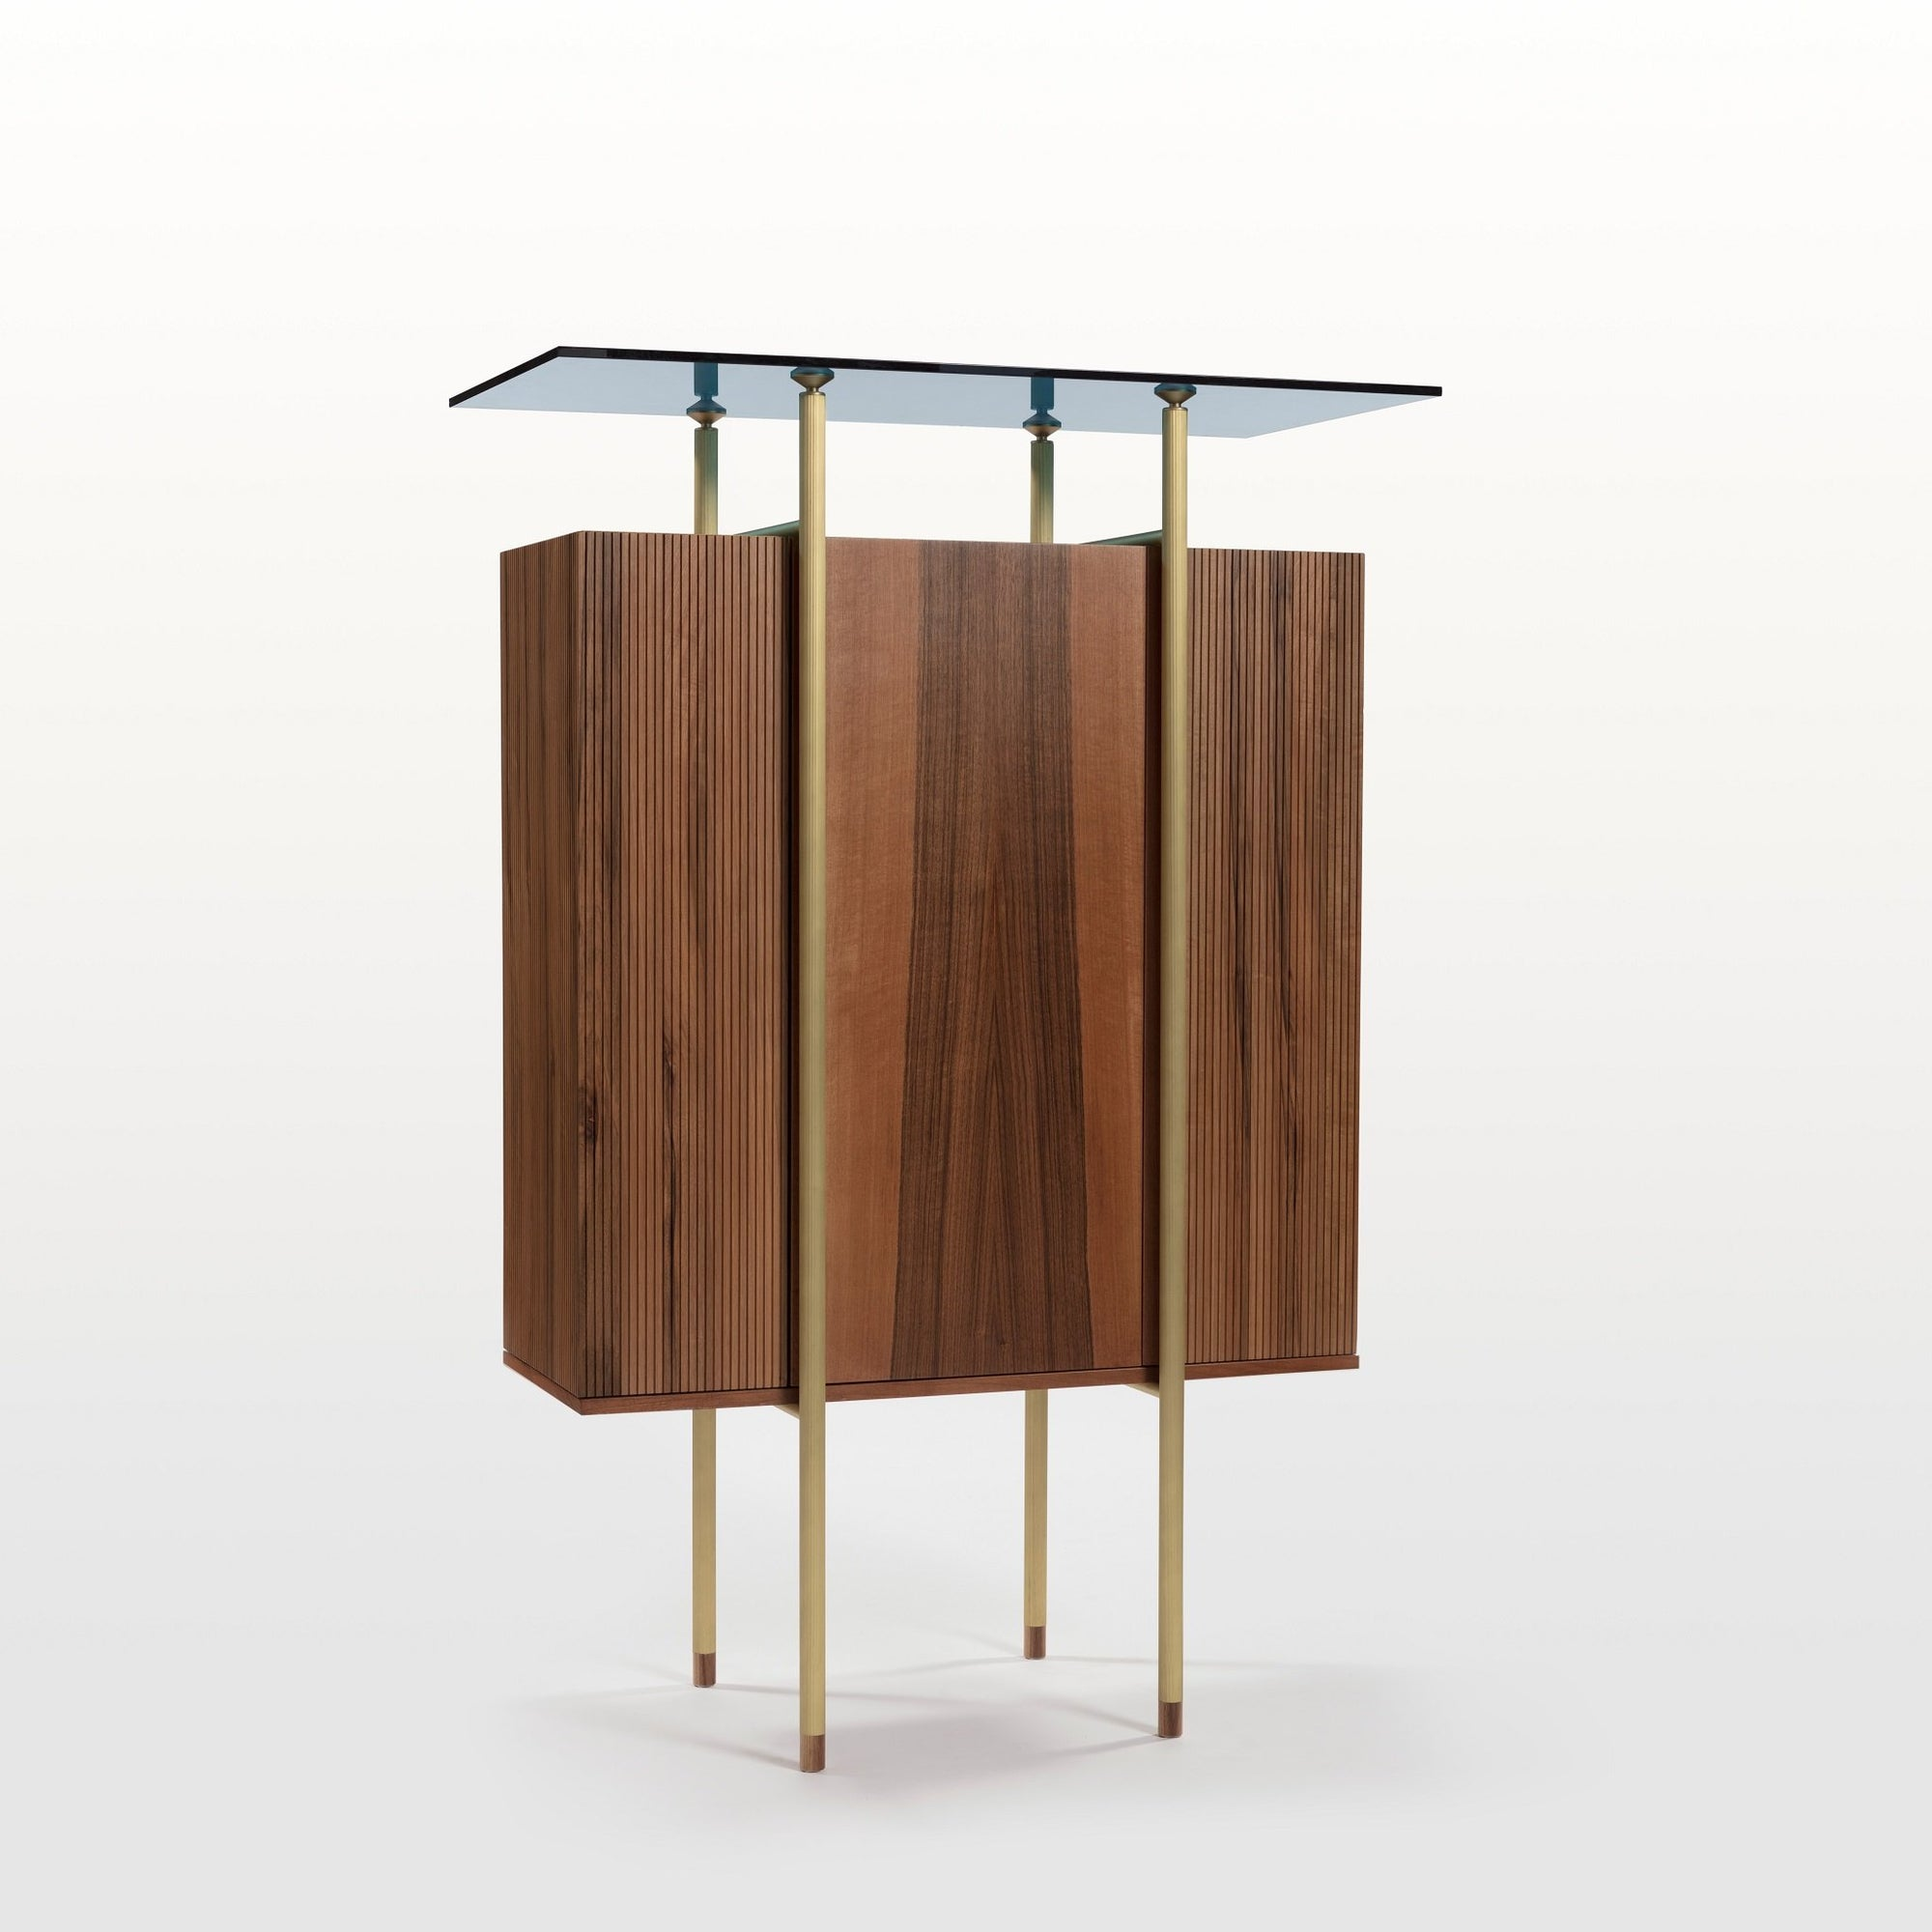 Serica Italian walnut cabinet by Viviana Degrandi and Medulum for Rubble marketplace for interior designers